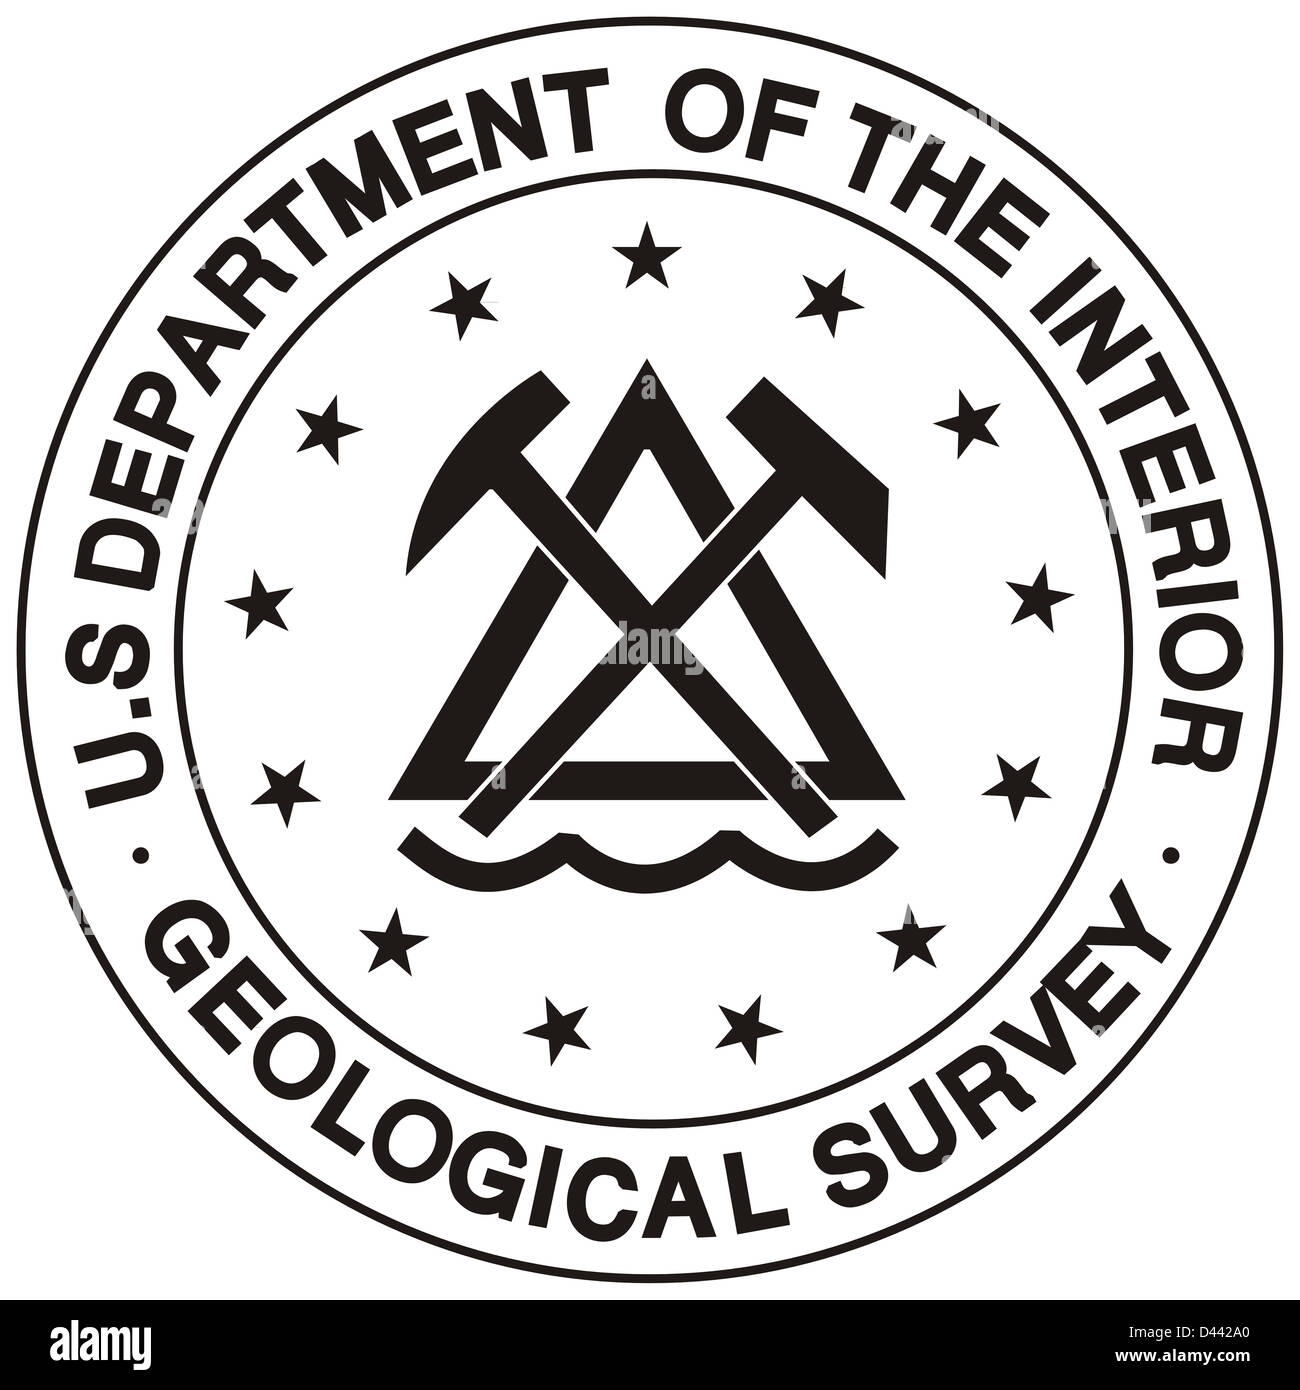 United States Department Of The Interior Geological Survey Seal Stock Photo Royalty Free Image